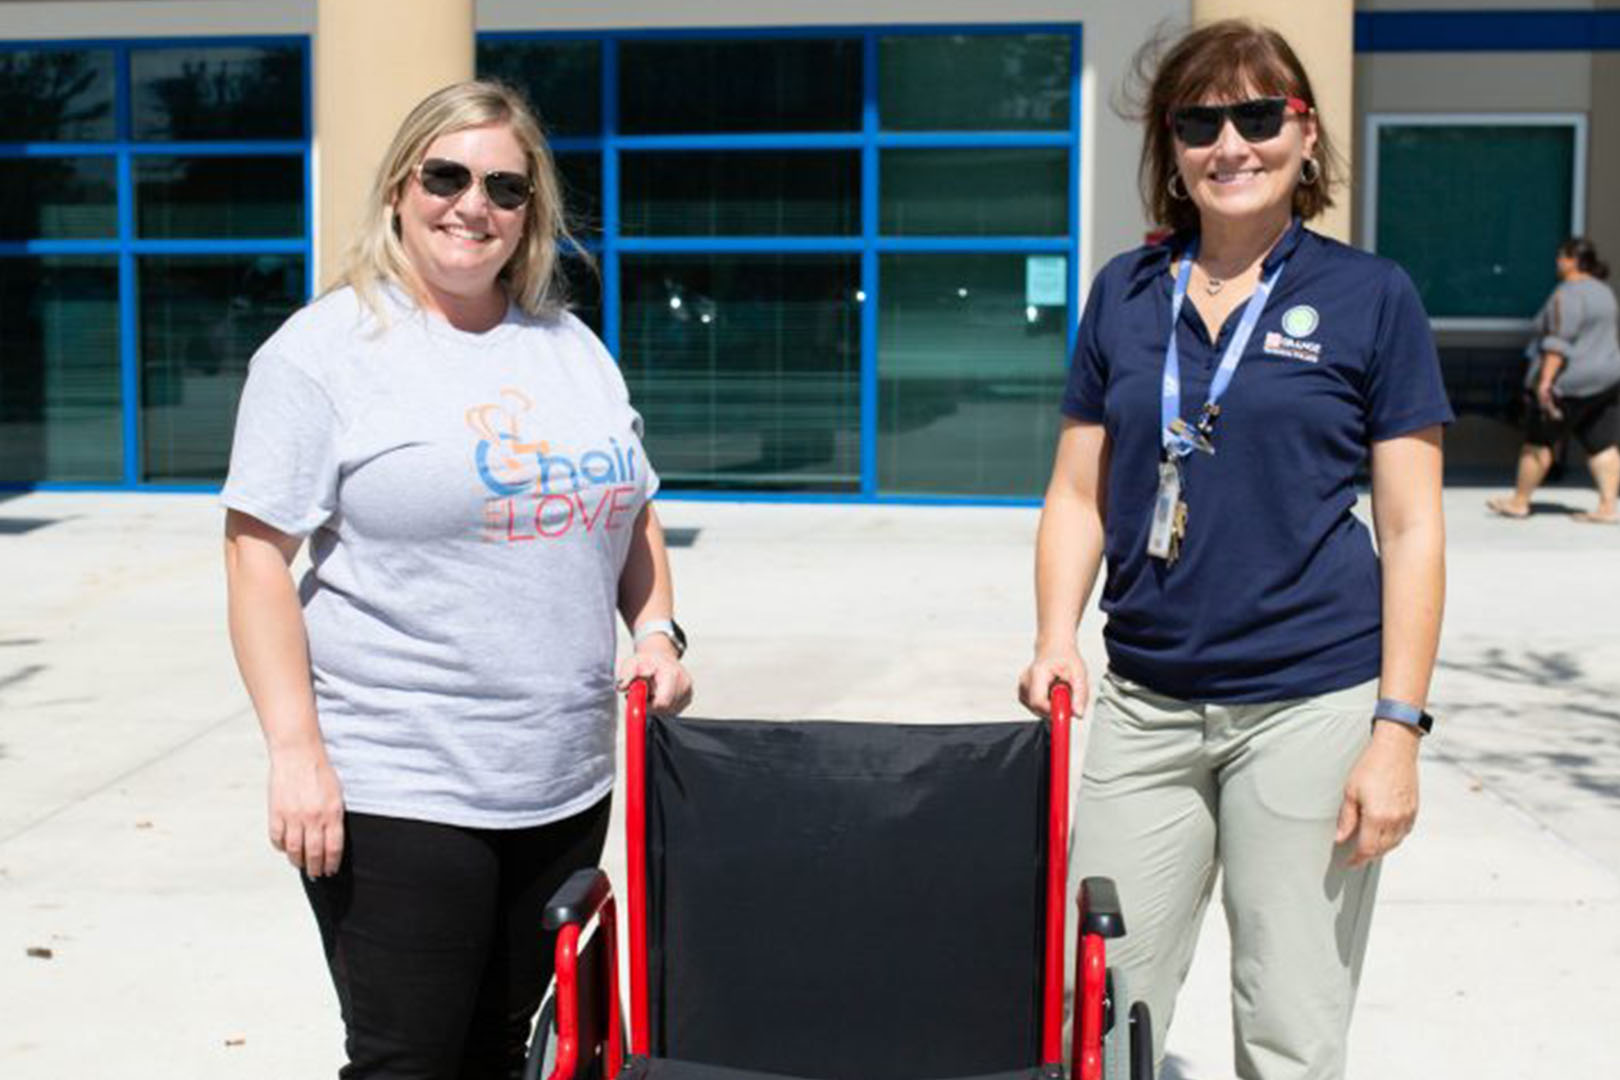 Two women posing with a wheelchair between them